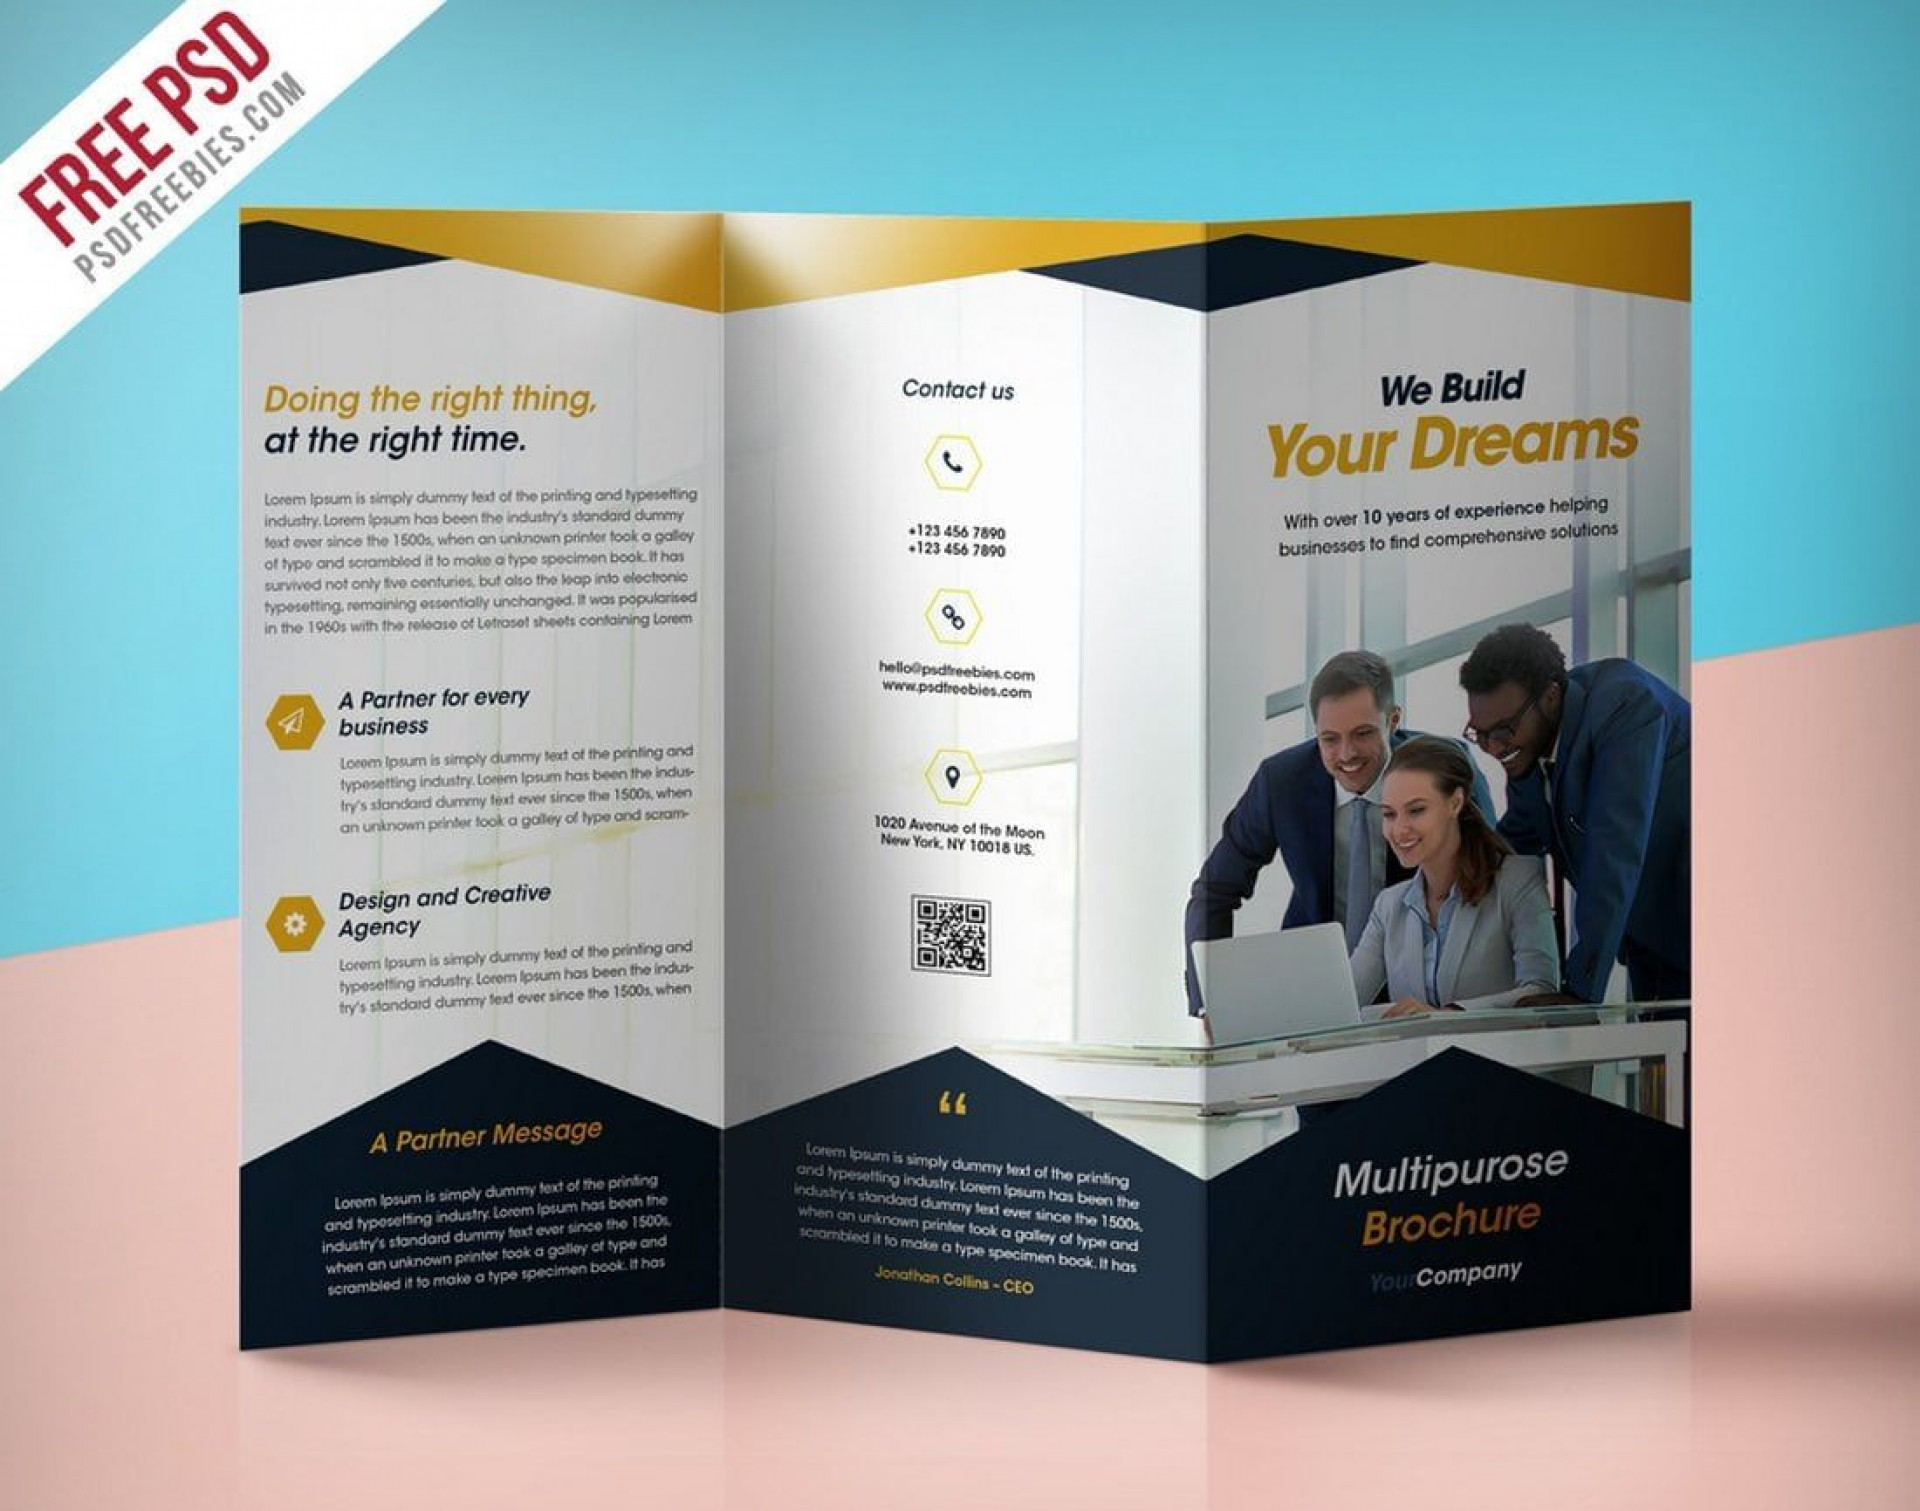 008 Magnificent Busines Flyer Template Free Download Inspiration  Psd Design1920